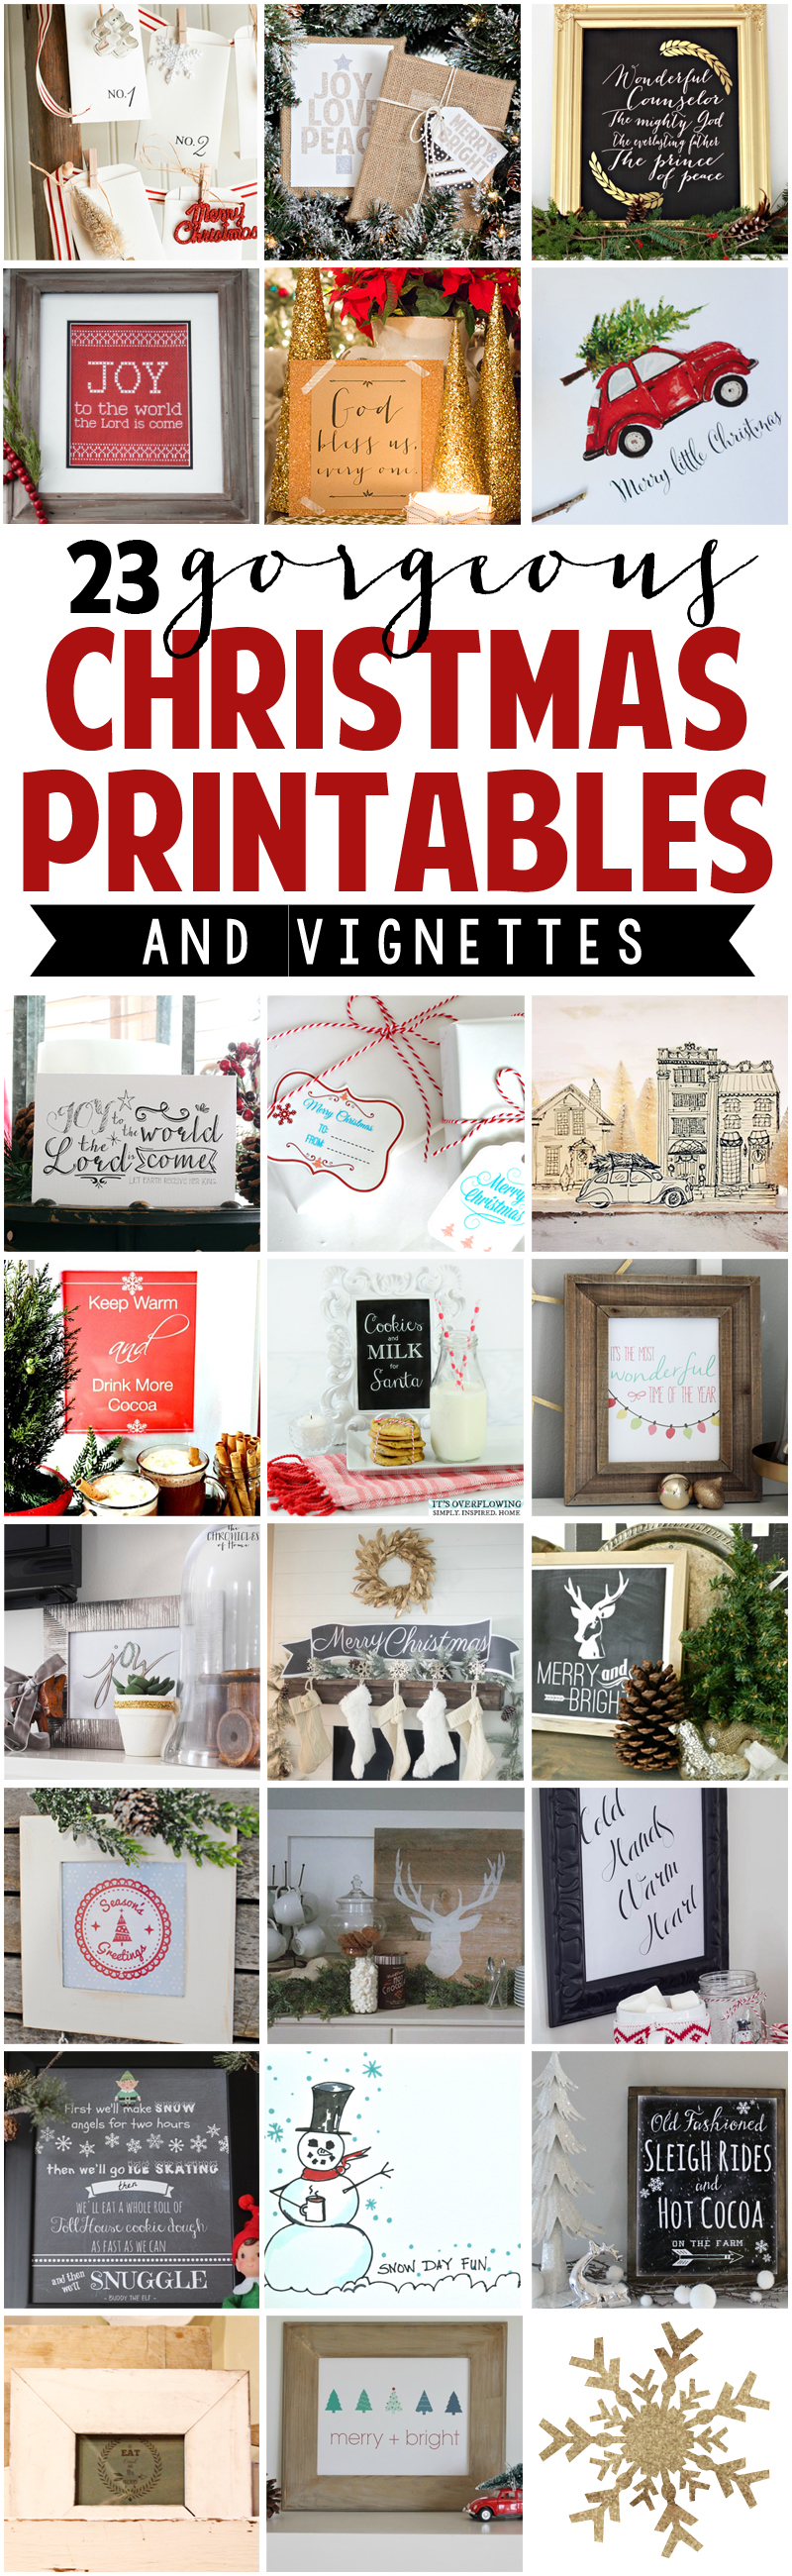 23 Gorgeous Christmas Printables with Display Ideas (1)